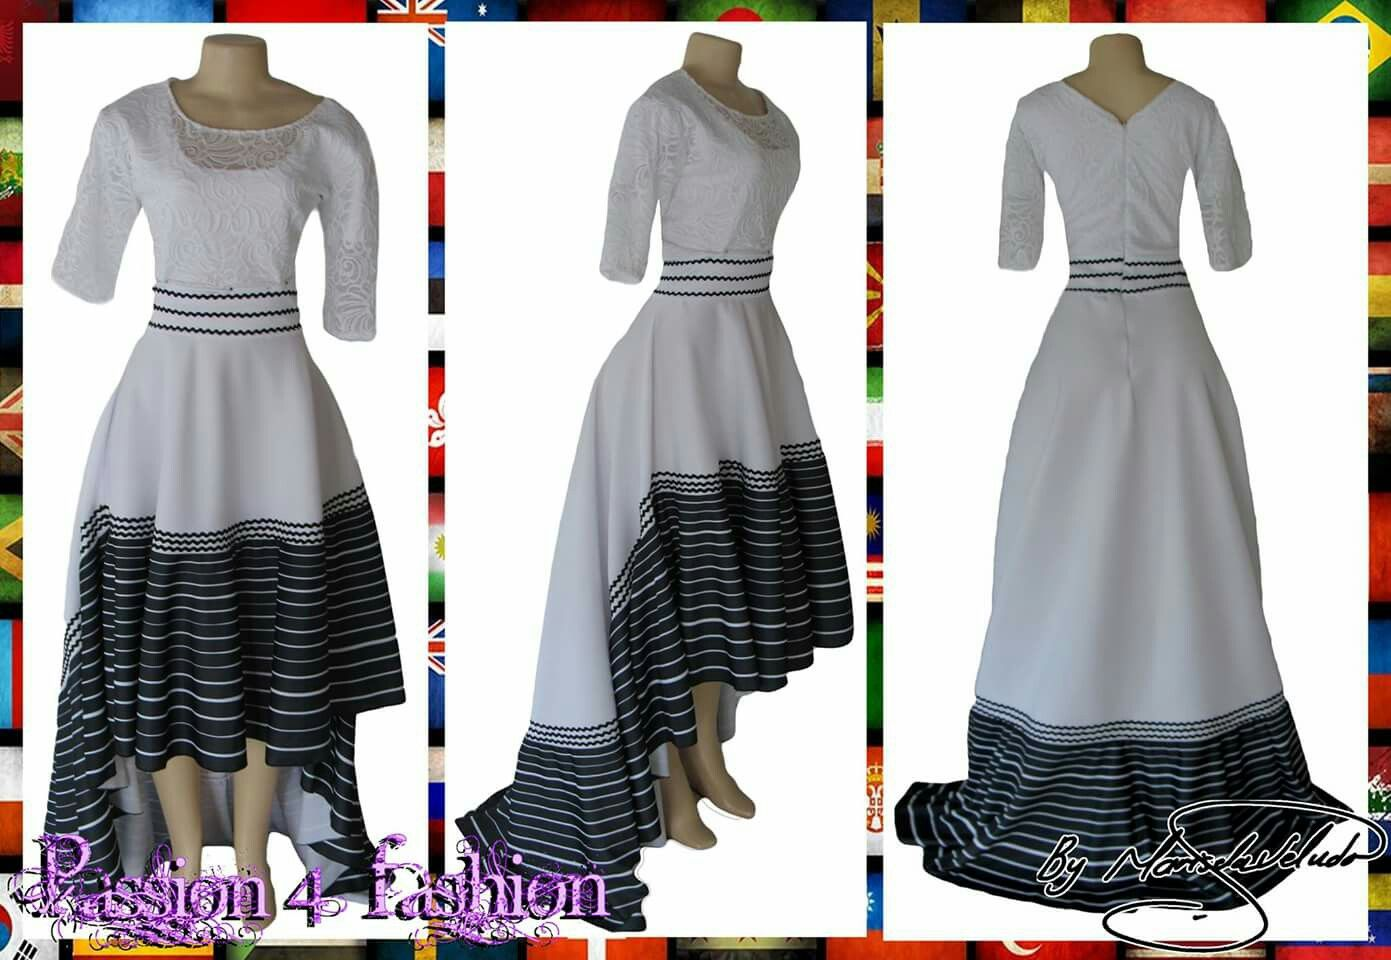 Xhosa black and white hi low traditional dress with a lace bodice